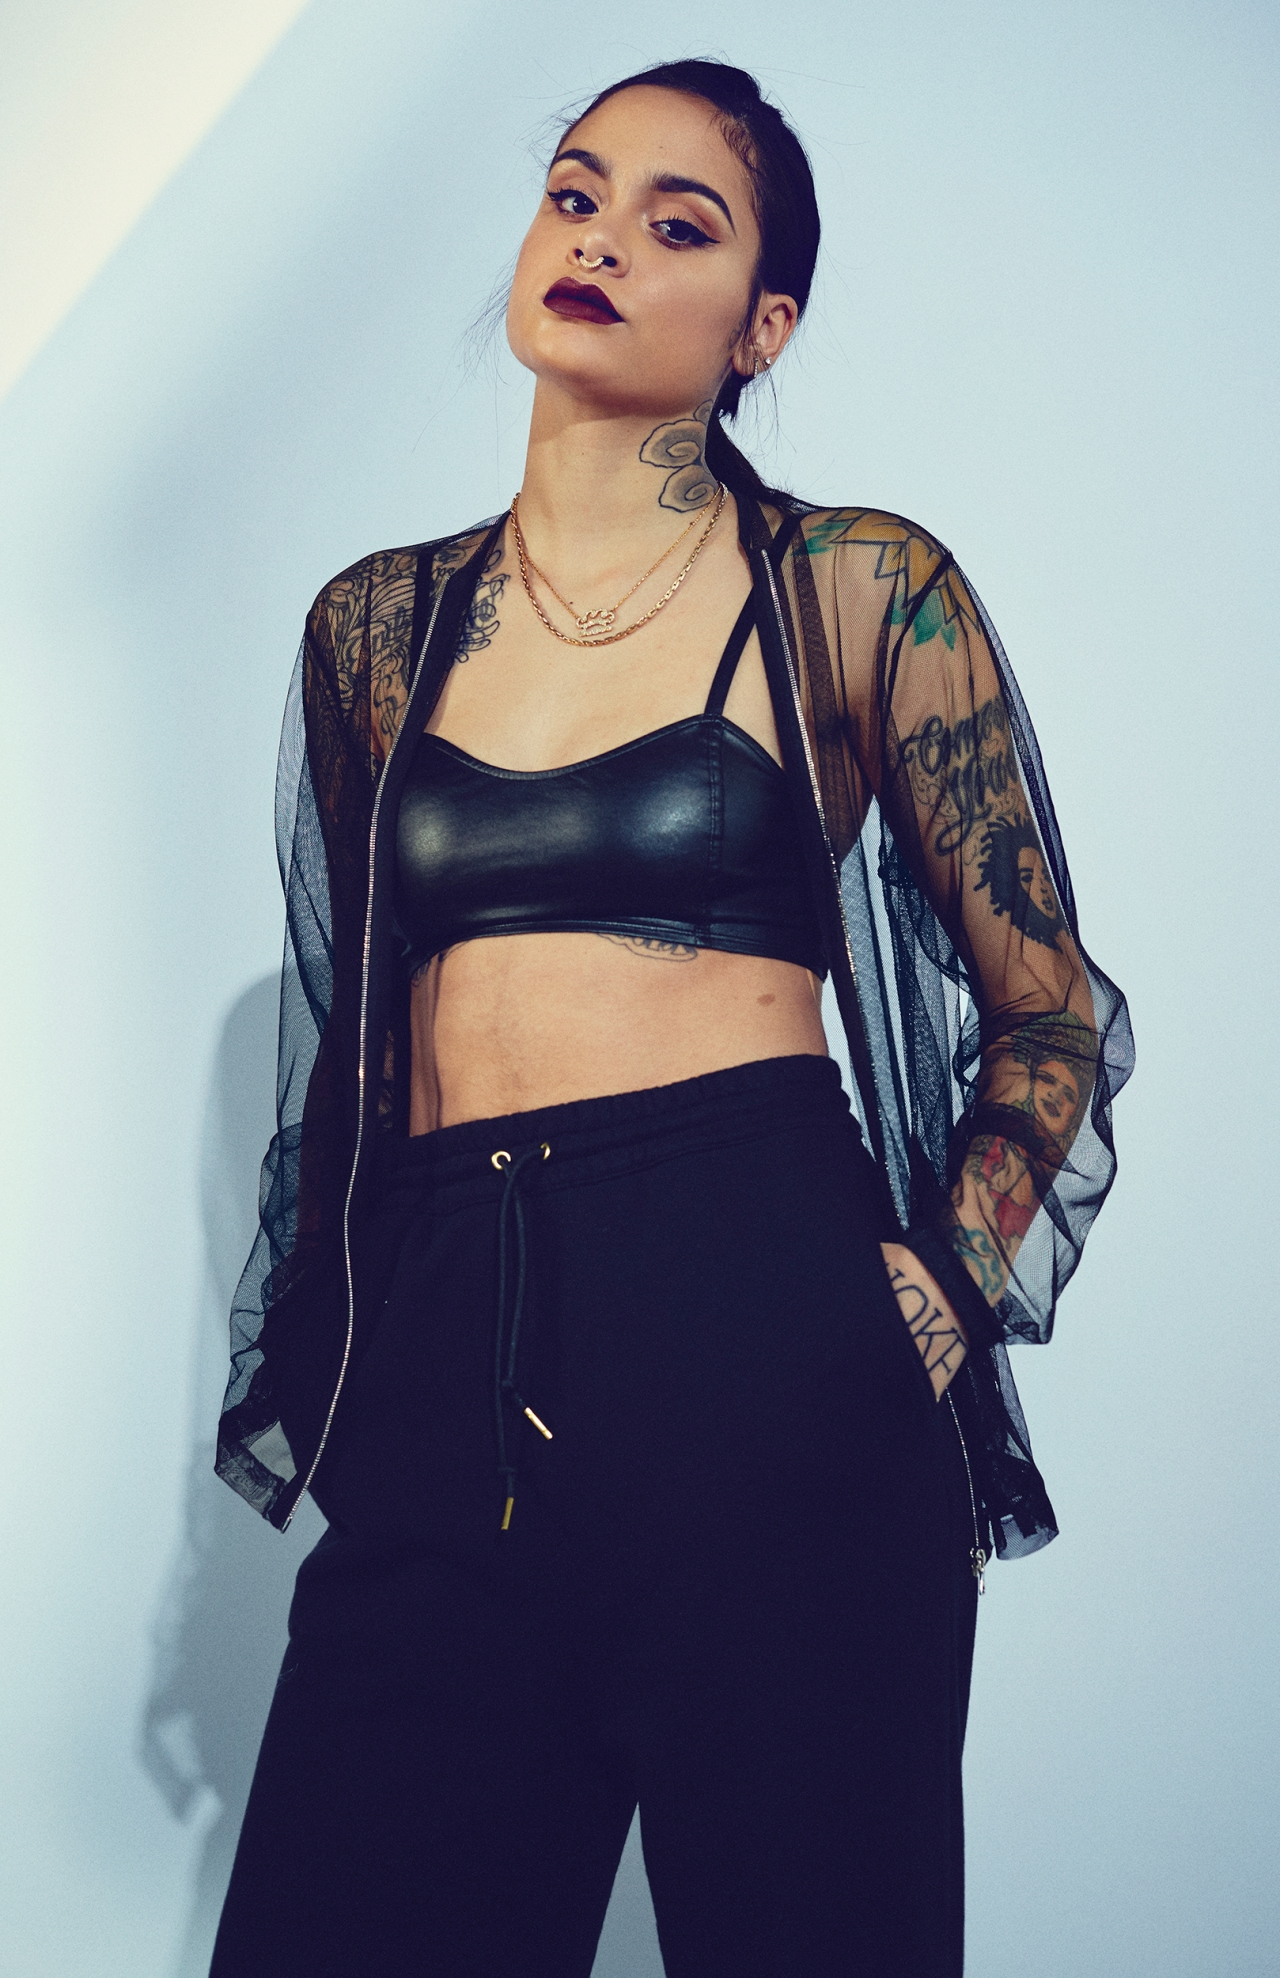 Singer Kehlani for Wonderland